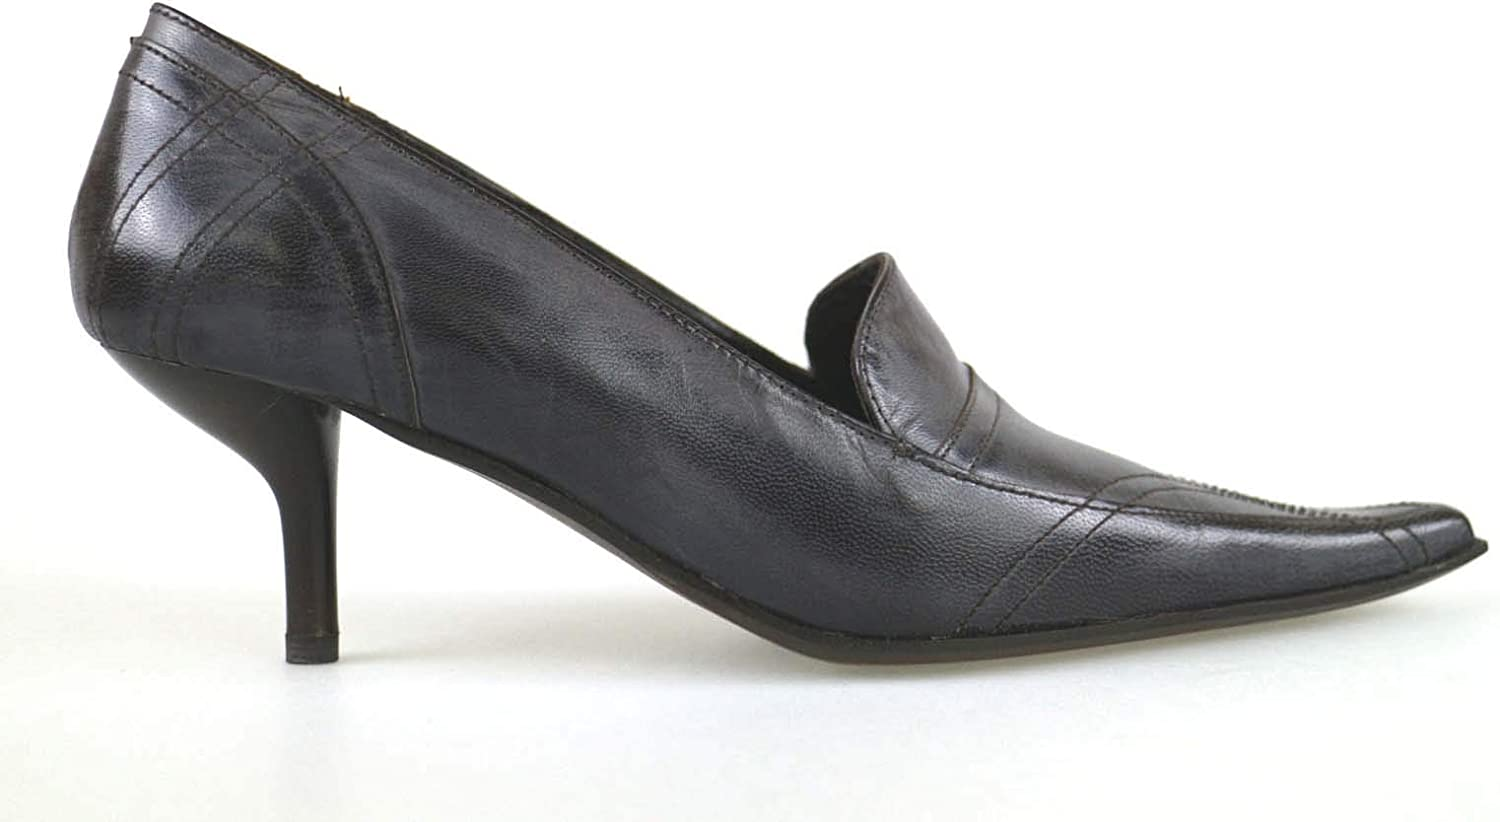 GIANNA GI Pumps-shoes Womens Leather Brown 9 US